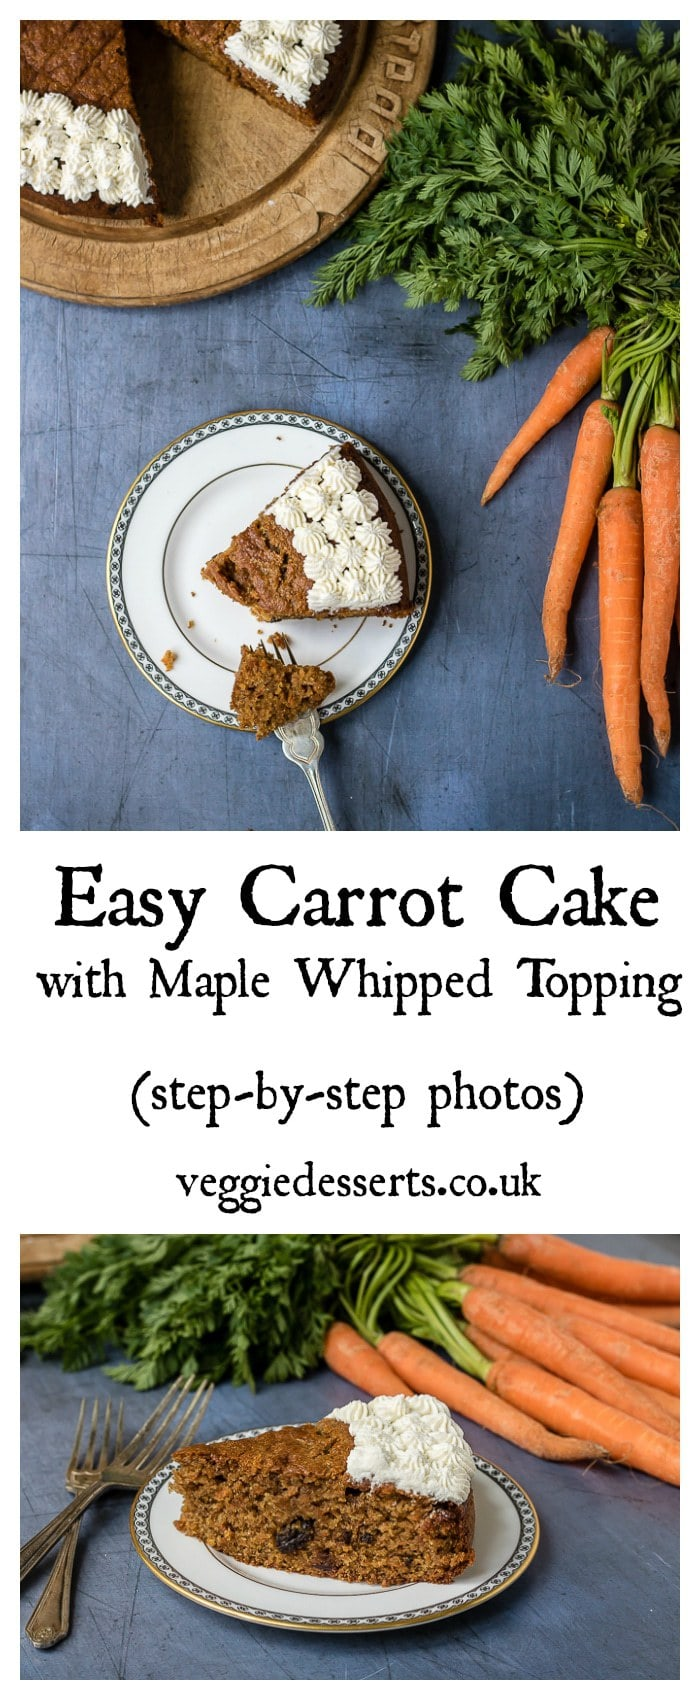 This Easy Carrot Cake is moist, delicate and filled with sweet earthy carrots. The heady scent of cinnamon and the sweet plump raisins all mingle together in a delicious classic bake. It's a slice of nostalgia and your gateway to more unusual vegetable cakes. This recipe is nut-free. #carrotcake #cake #nutfree #maple